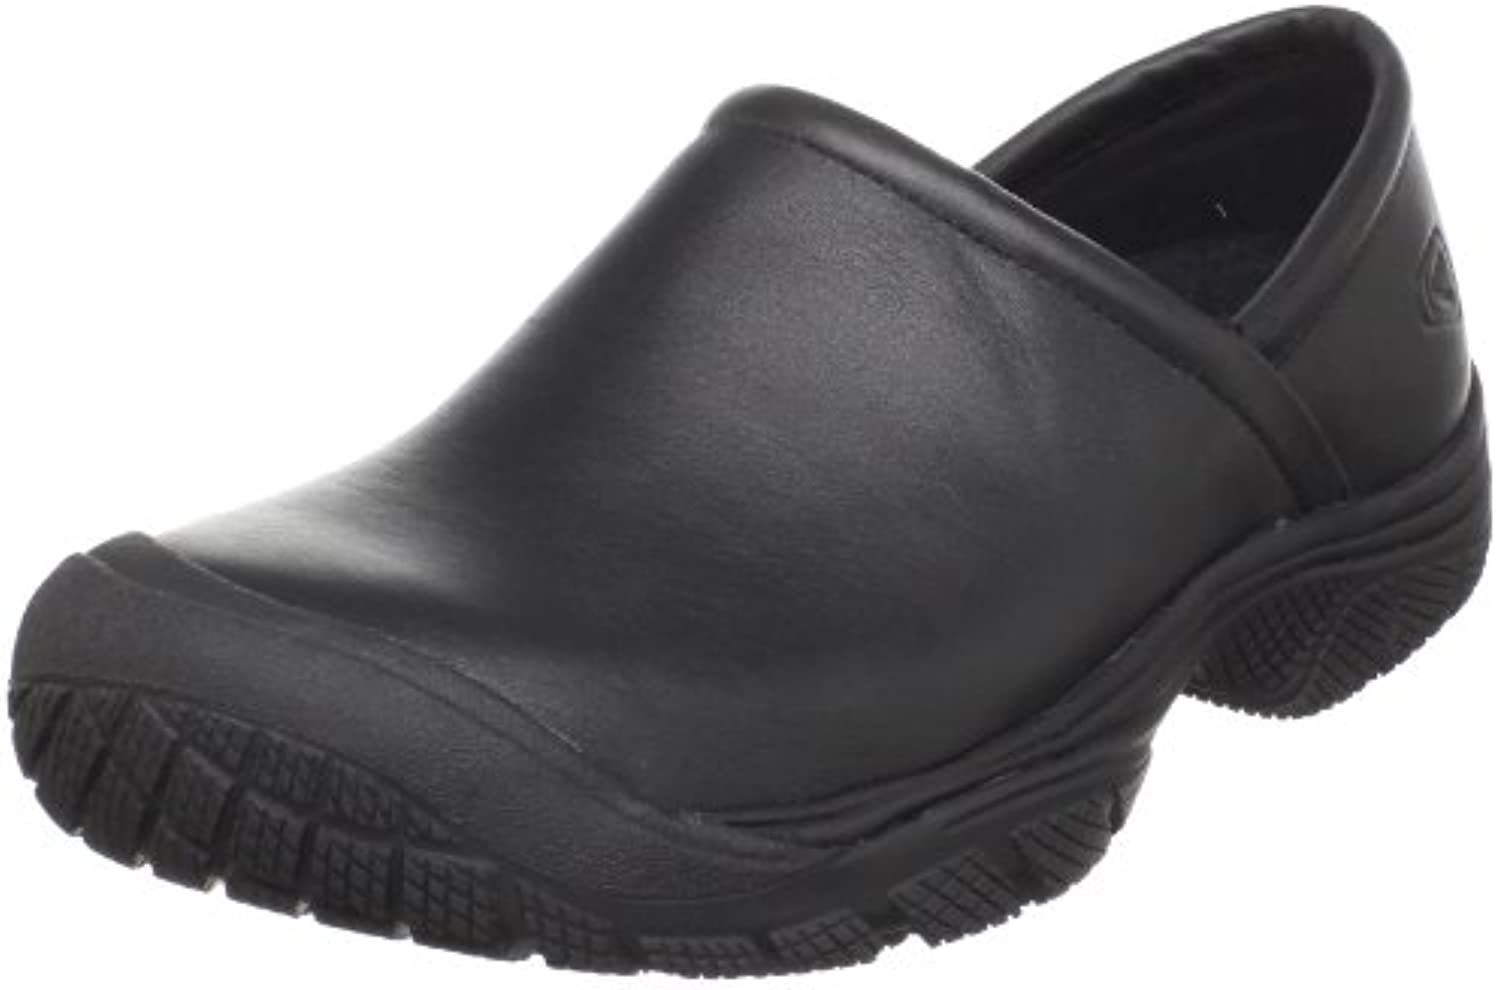 Keen Utility Men's PTC Slip on Work Shoe Black 7 M US